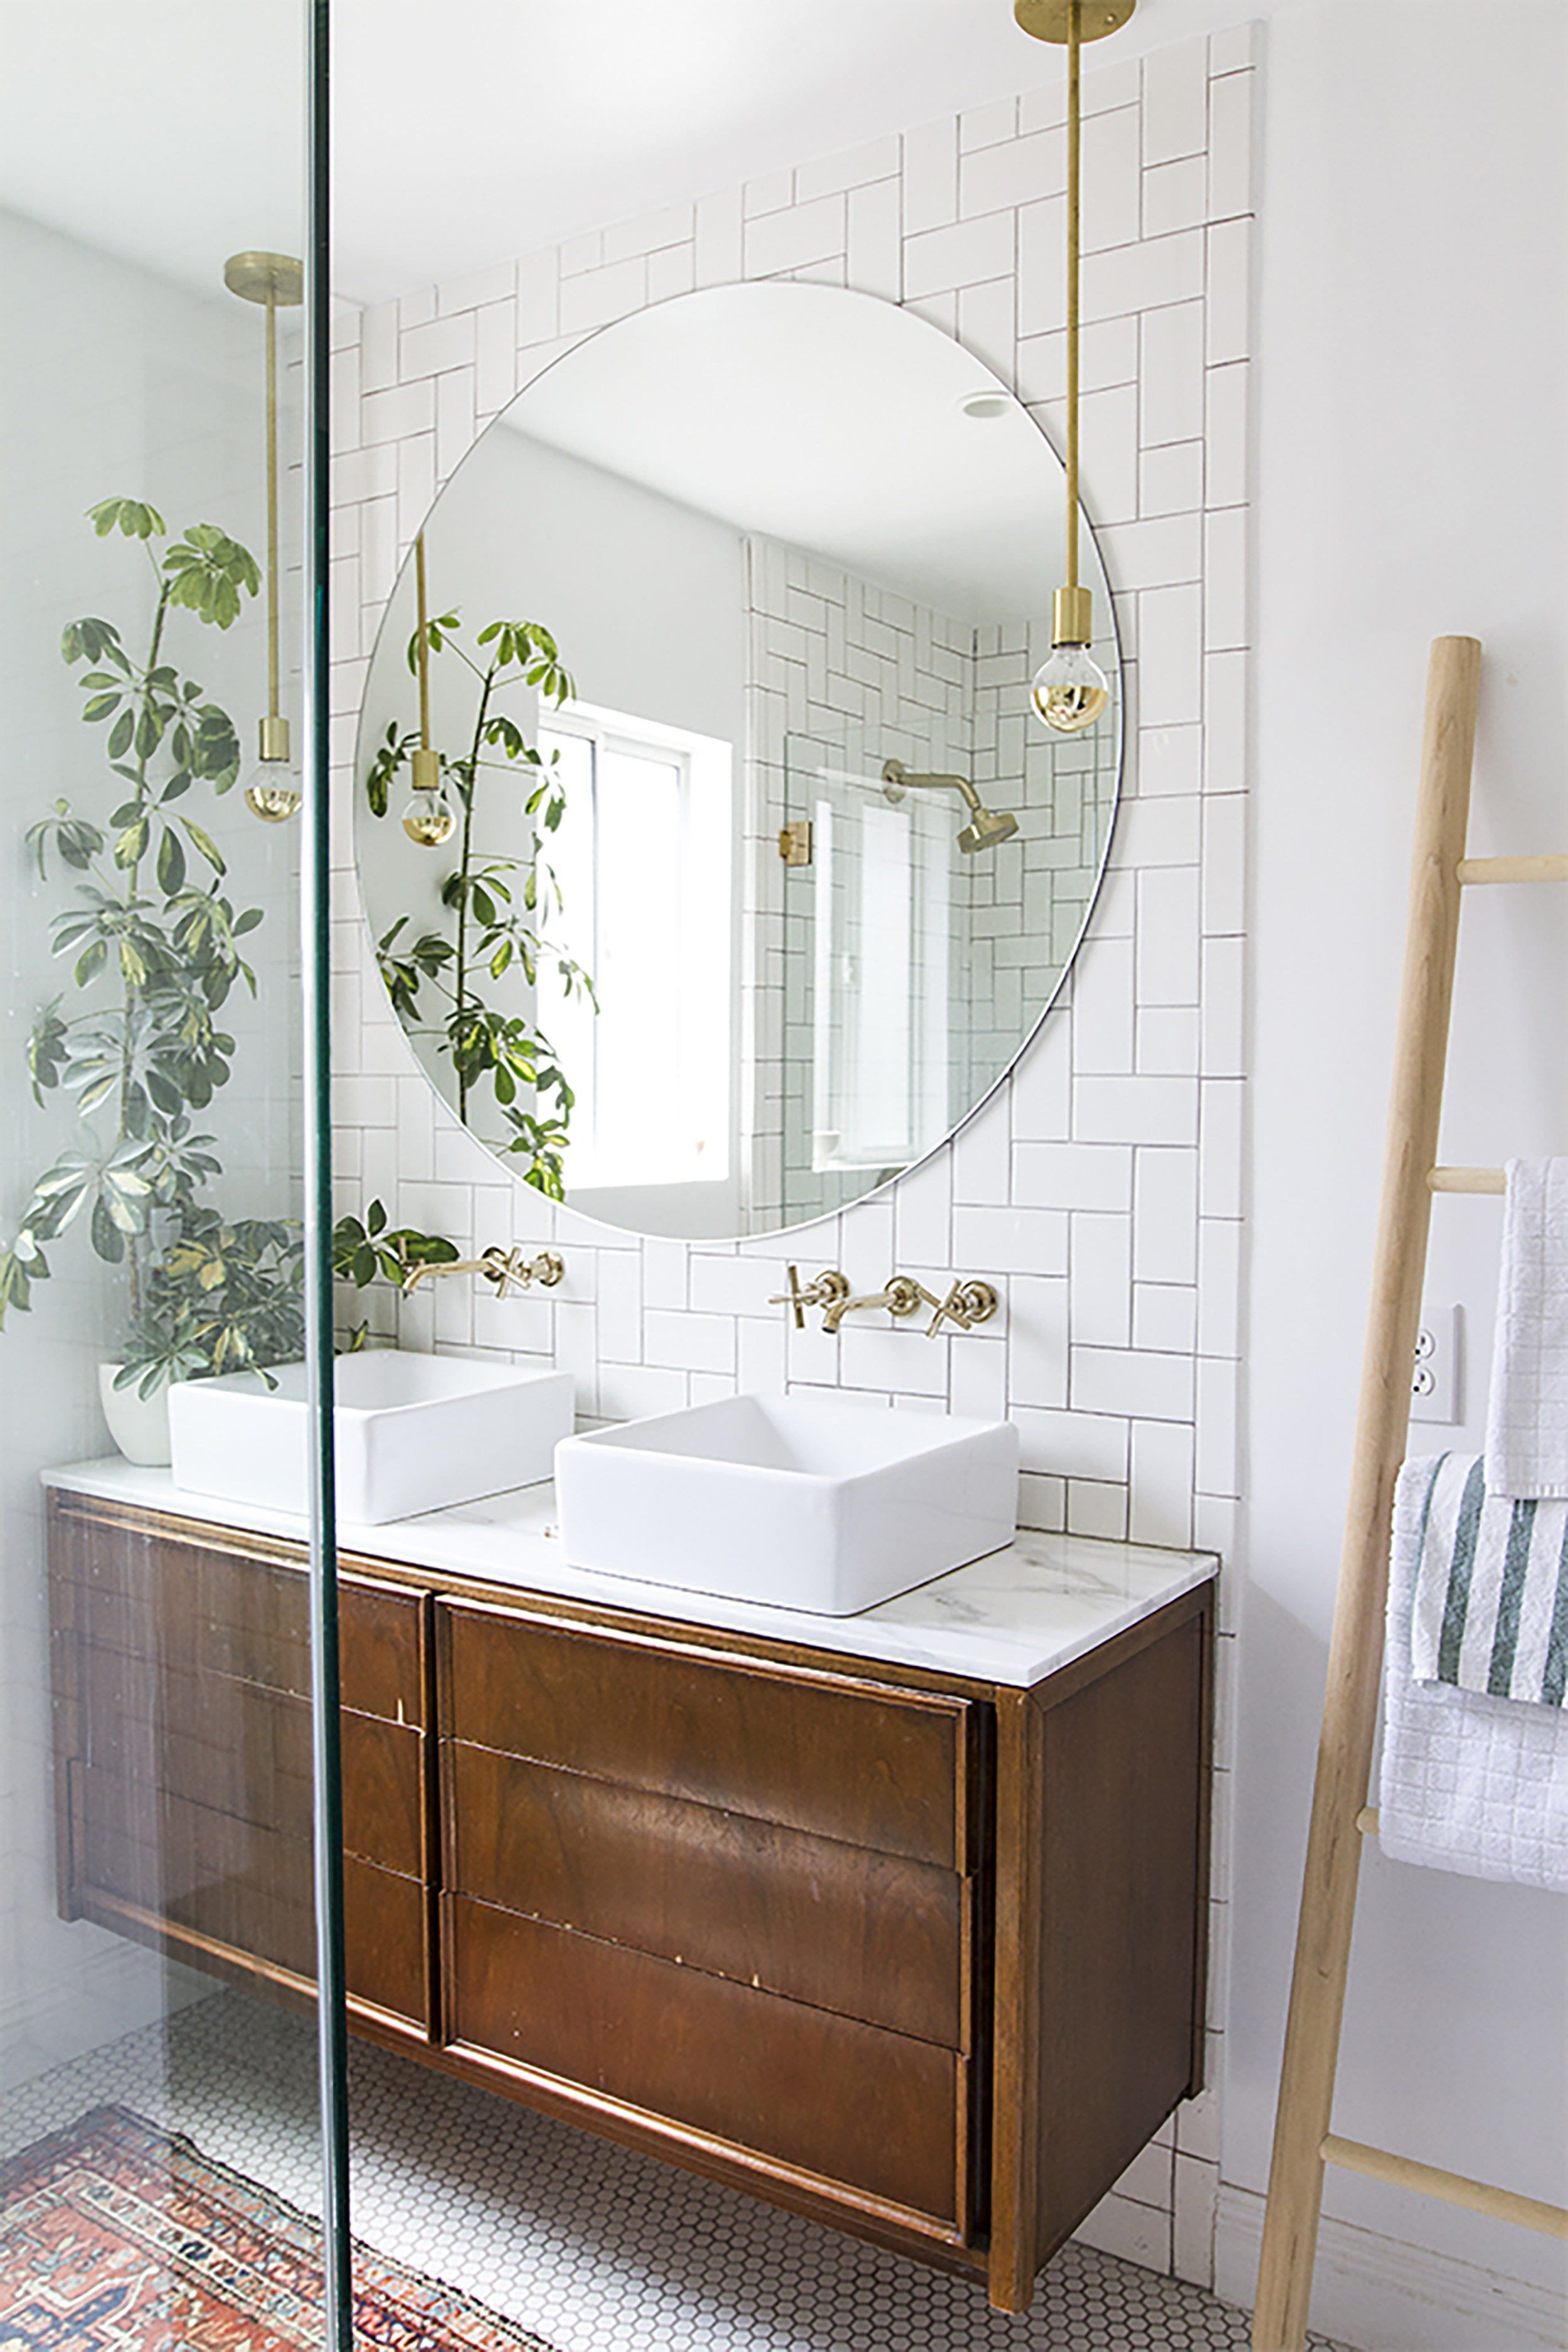 20+ Beautiful Bathroom Mirror Ideas to Shake Up Your Morning ...